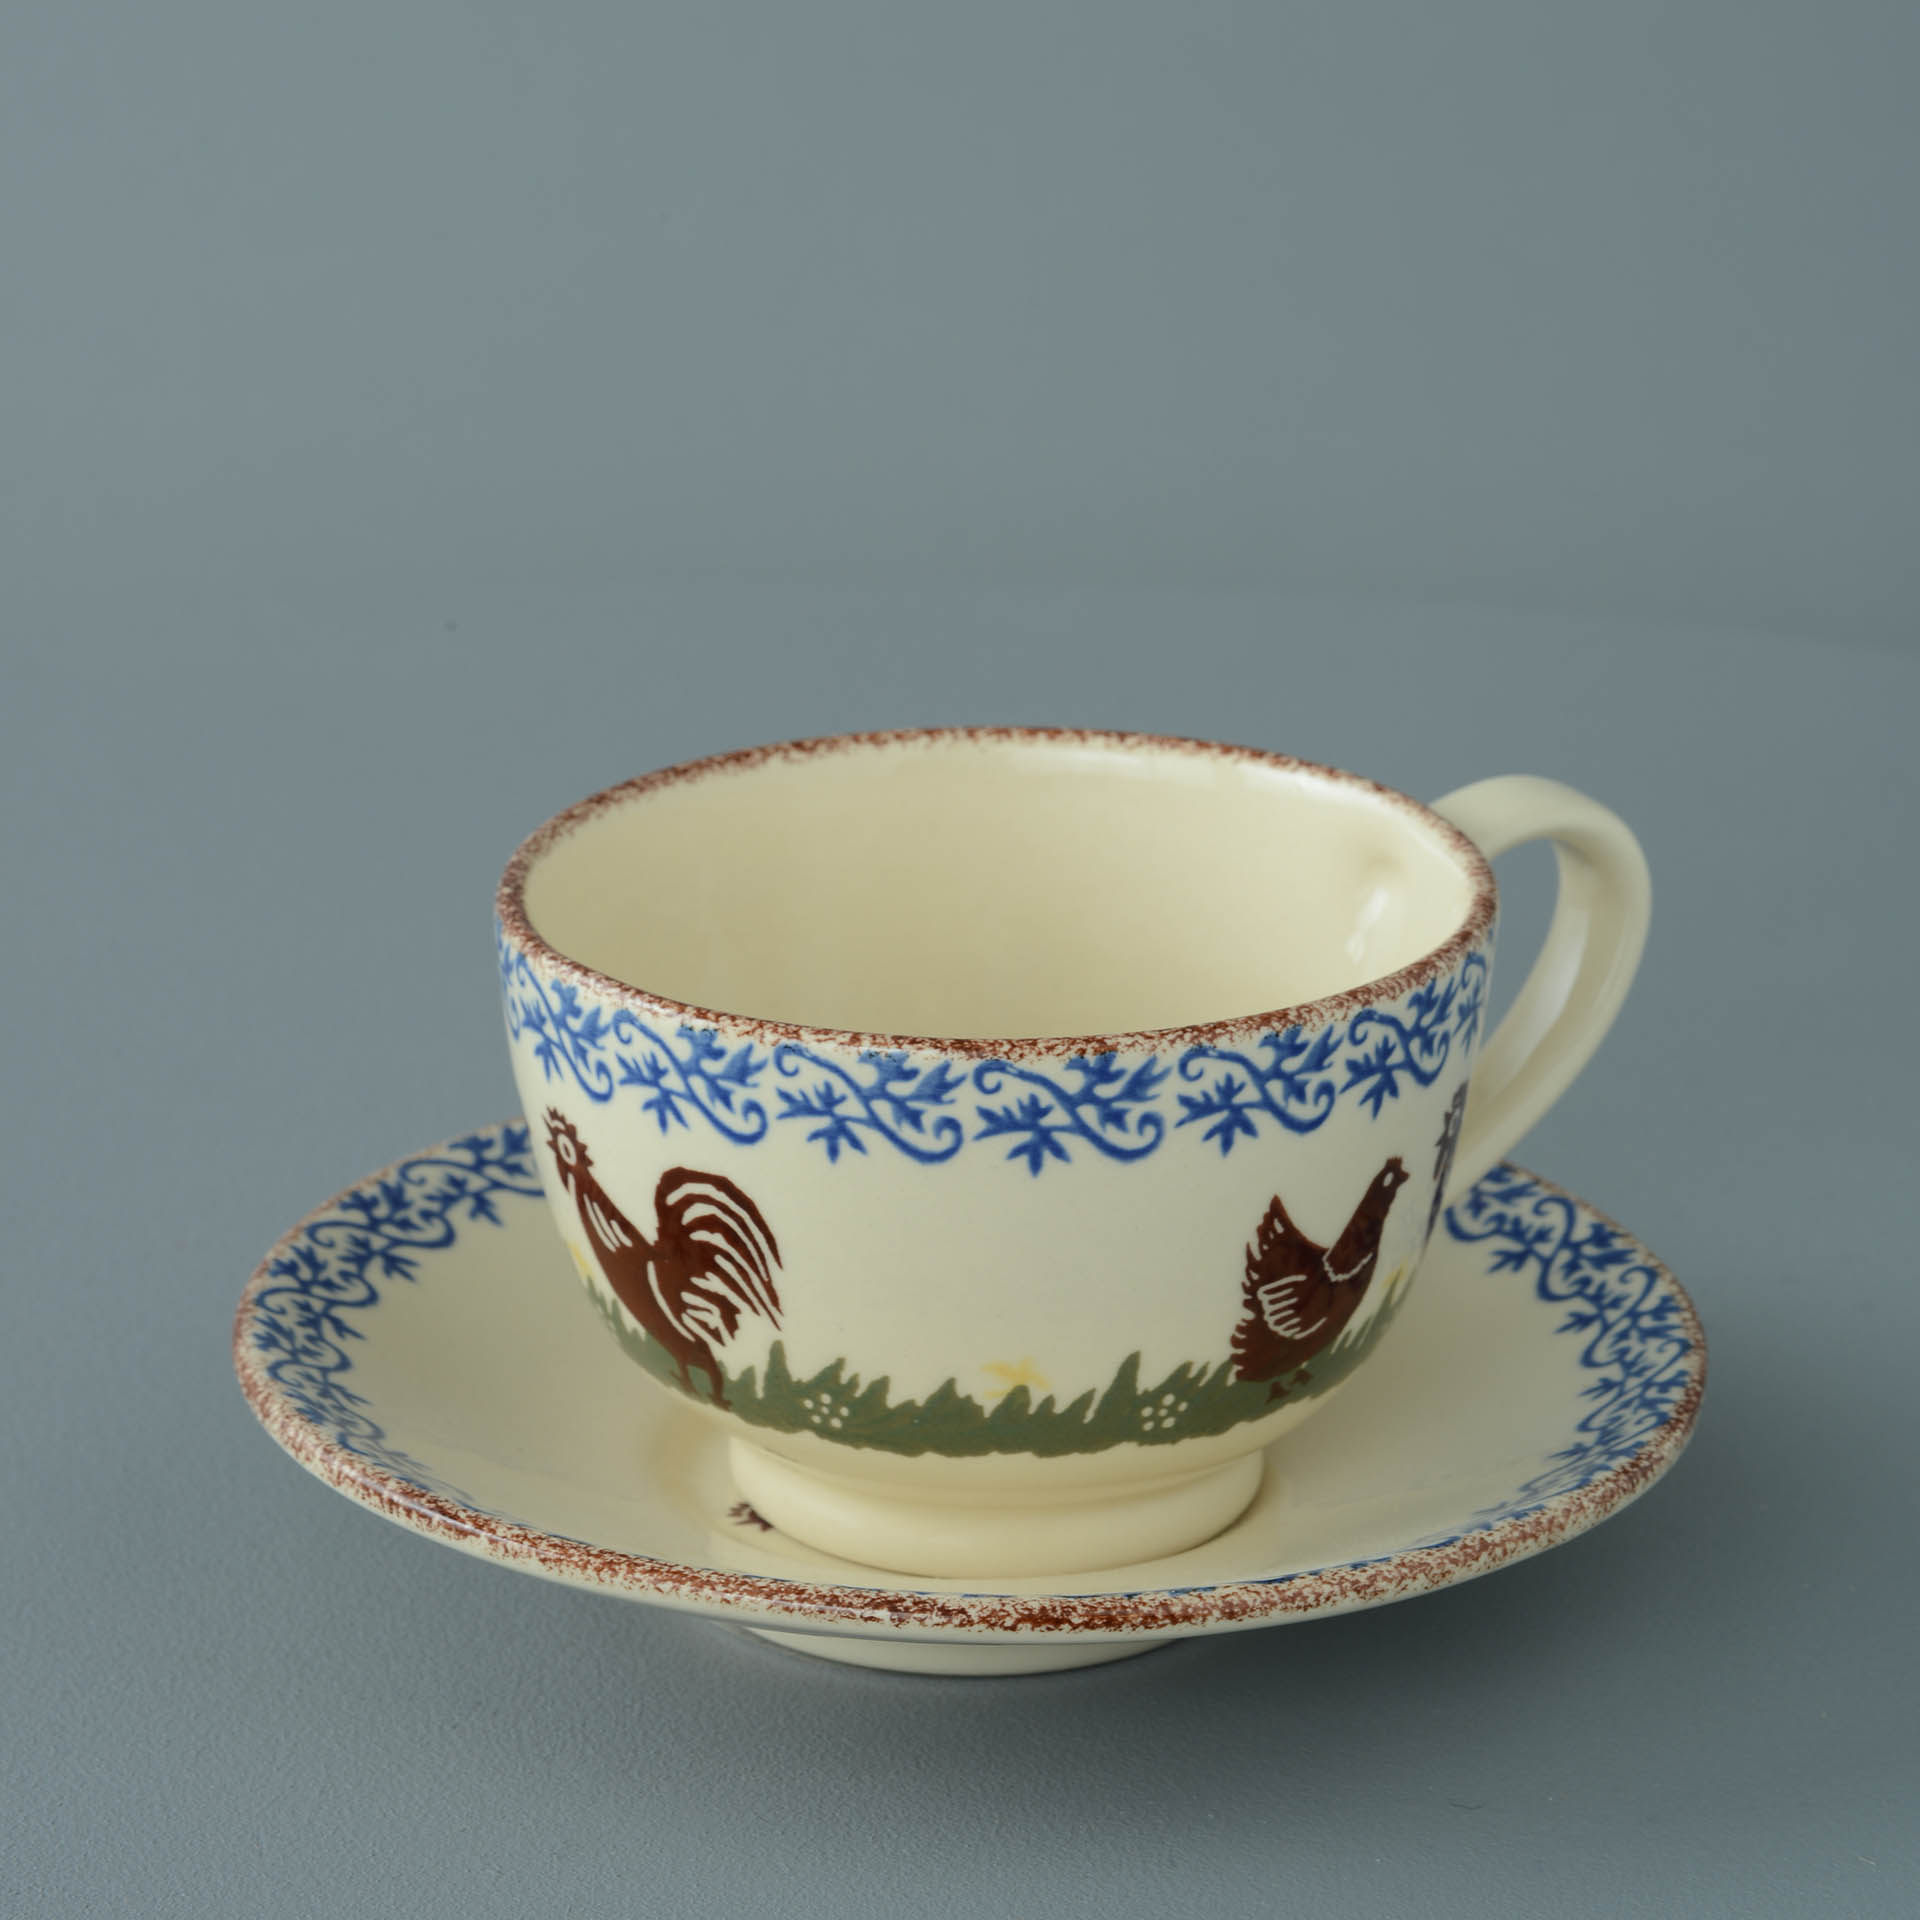 Cock & Hen Breakfast Cup and Saucer